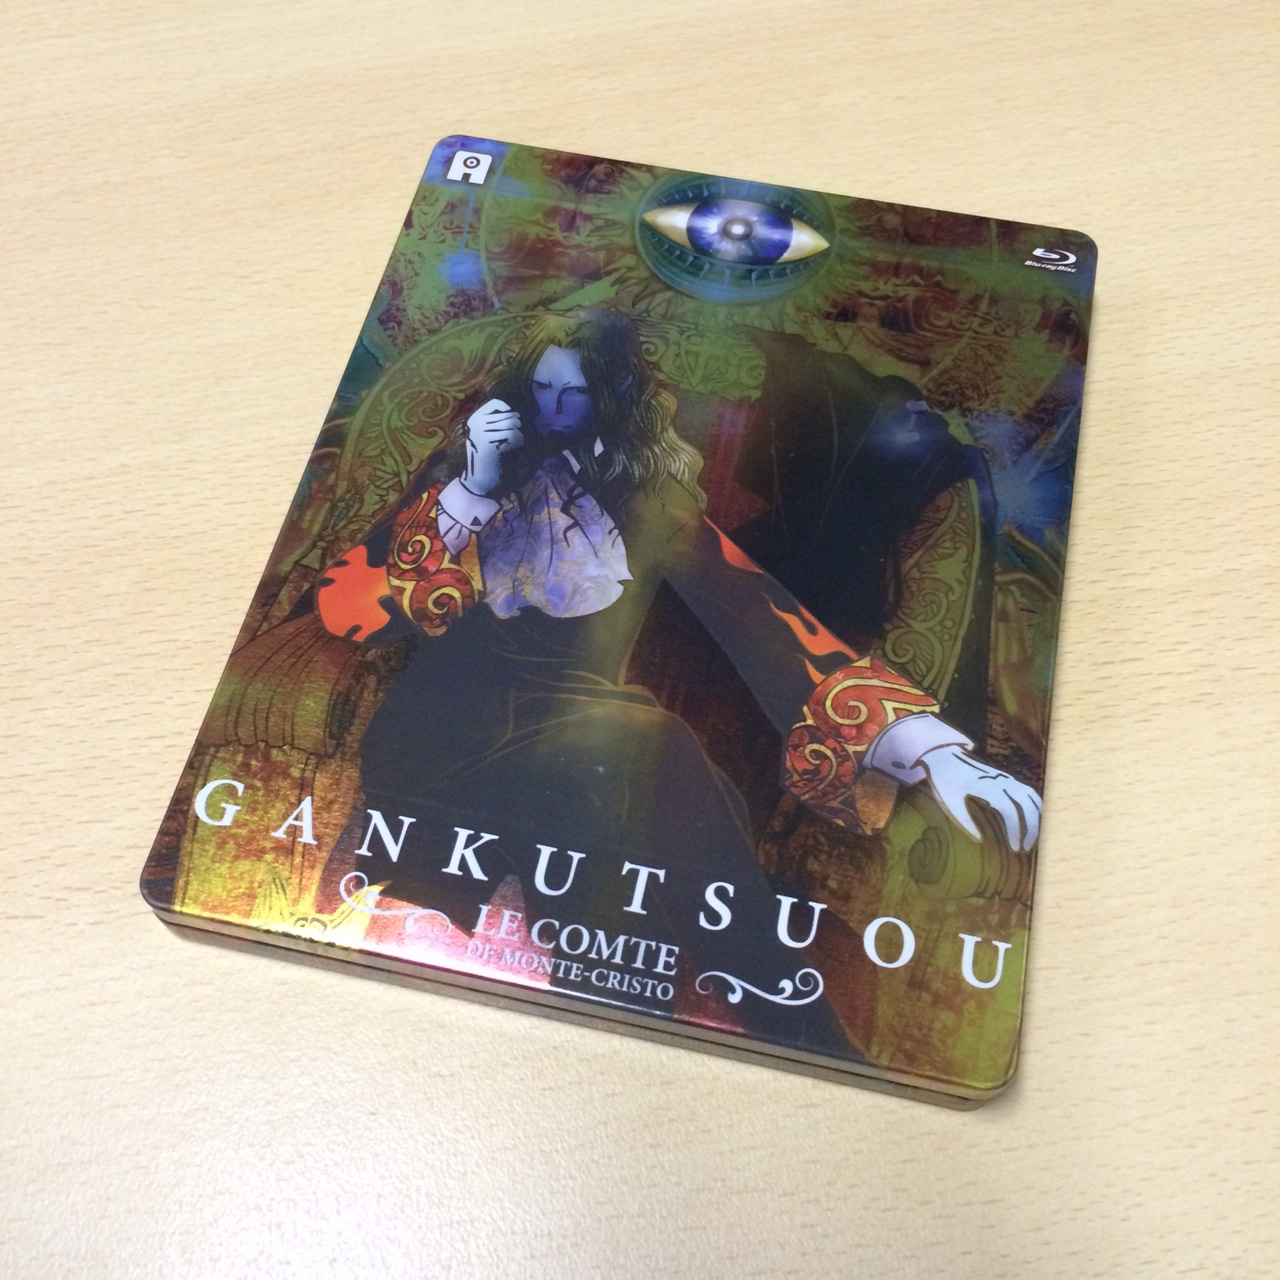 Unboxing Gankutsuou The Count of Monte Cristo All the Anime